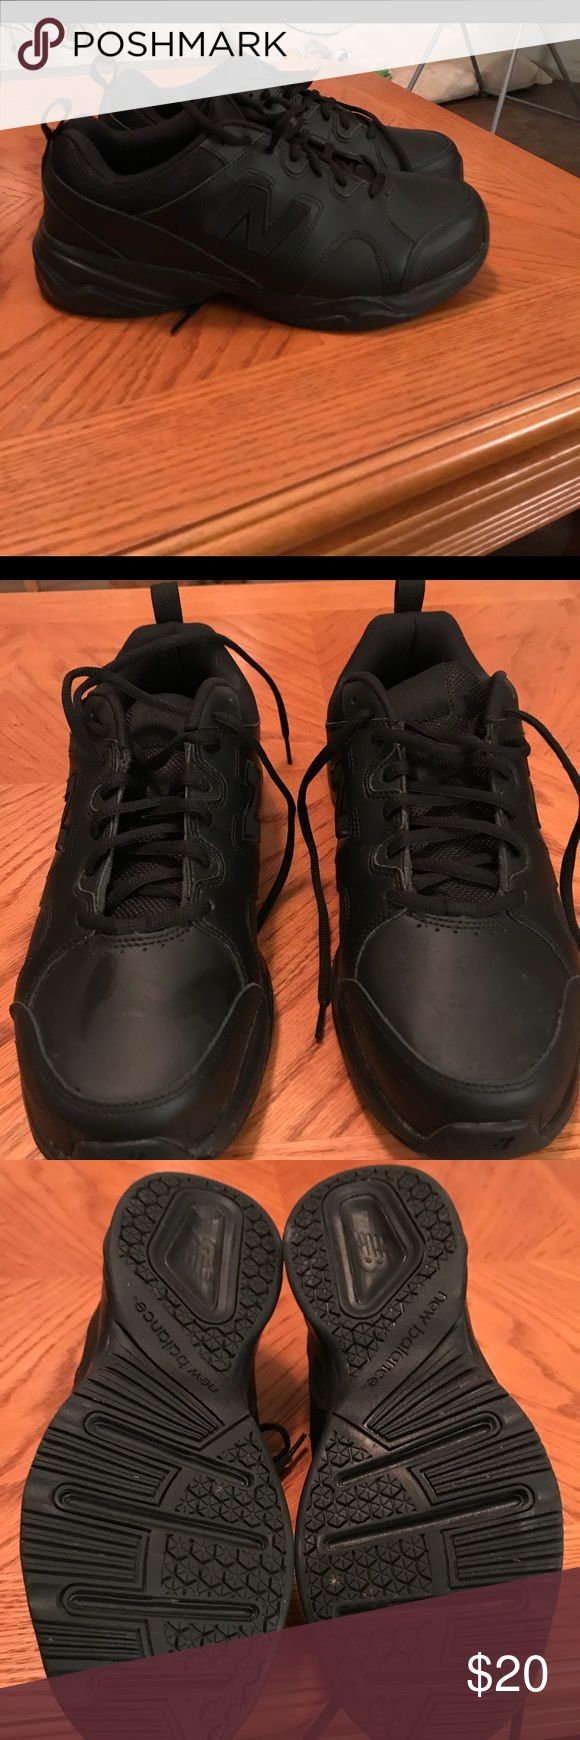 New Balance 609 v3 Mens Memory Sole  Size 11 4E New Balance Black 609 v3 Mens Memory Sole Shoes Size 11 4E EXTRA WIDE EU 43 MX609BZ3. These are in like new condition. May have been worn once if at all. New Balance Shoes Sneakers